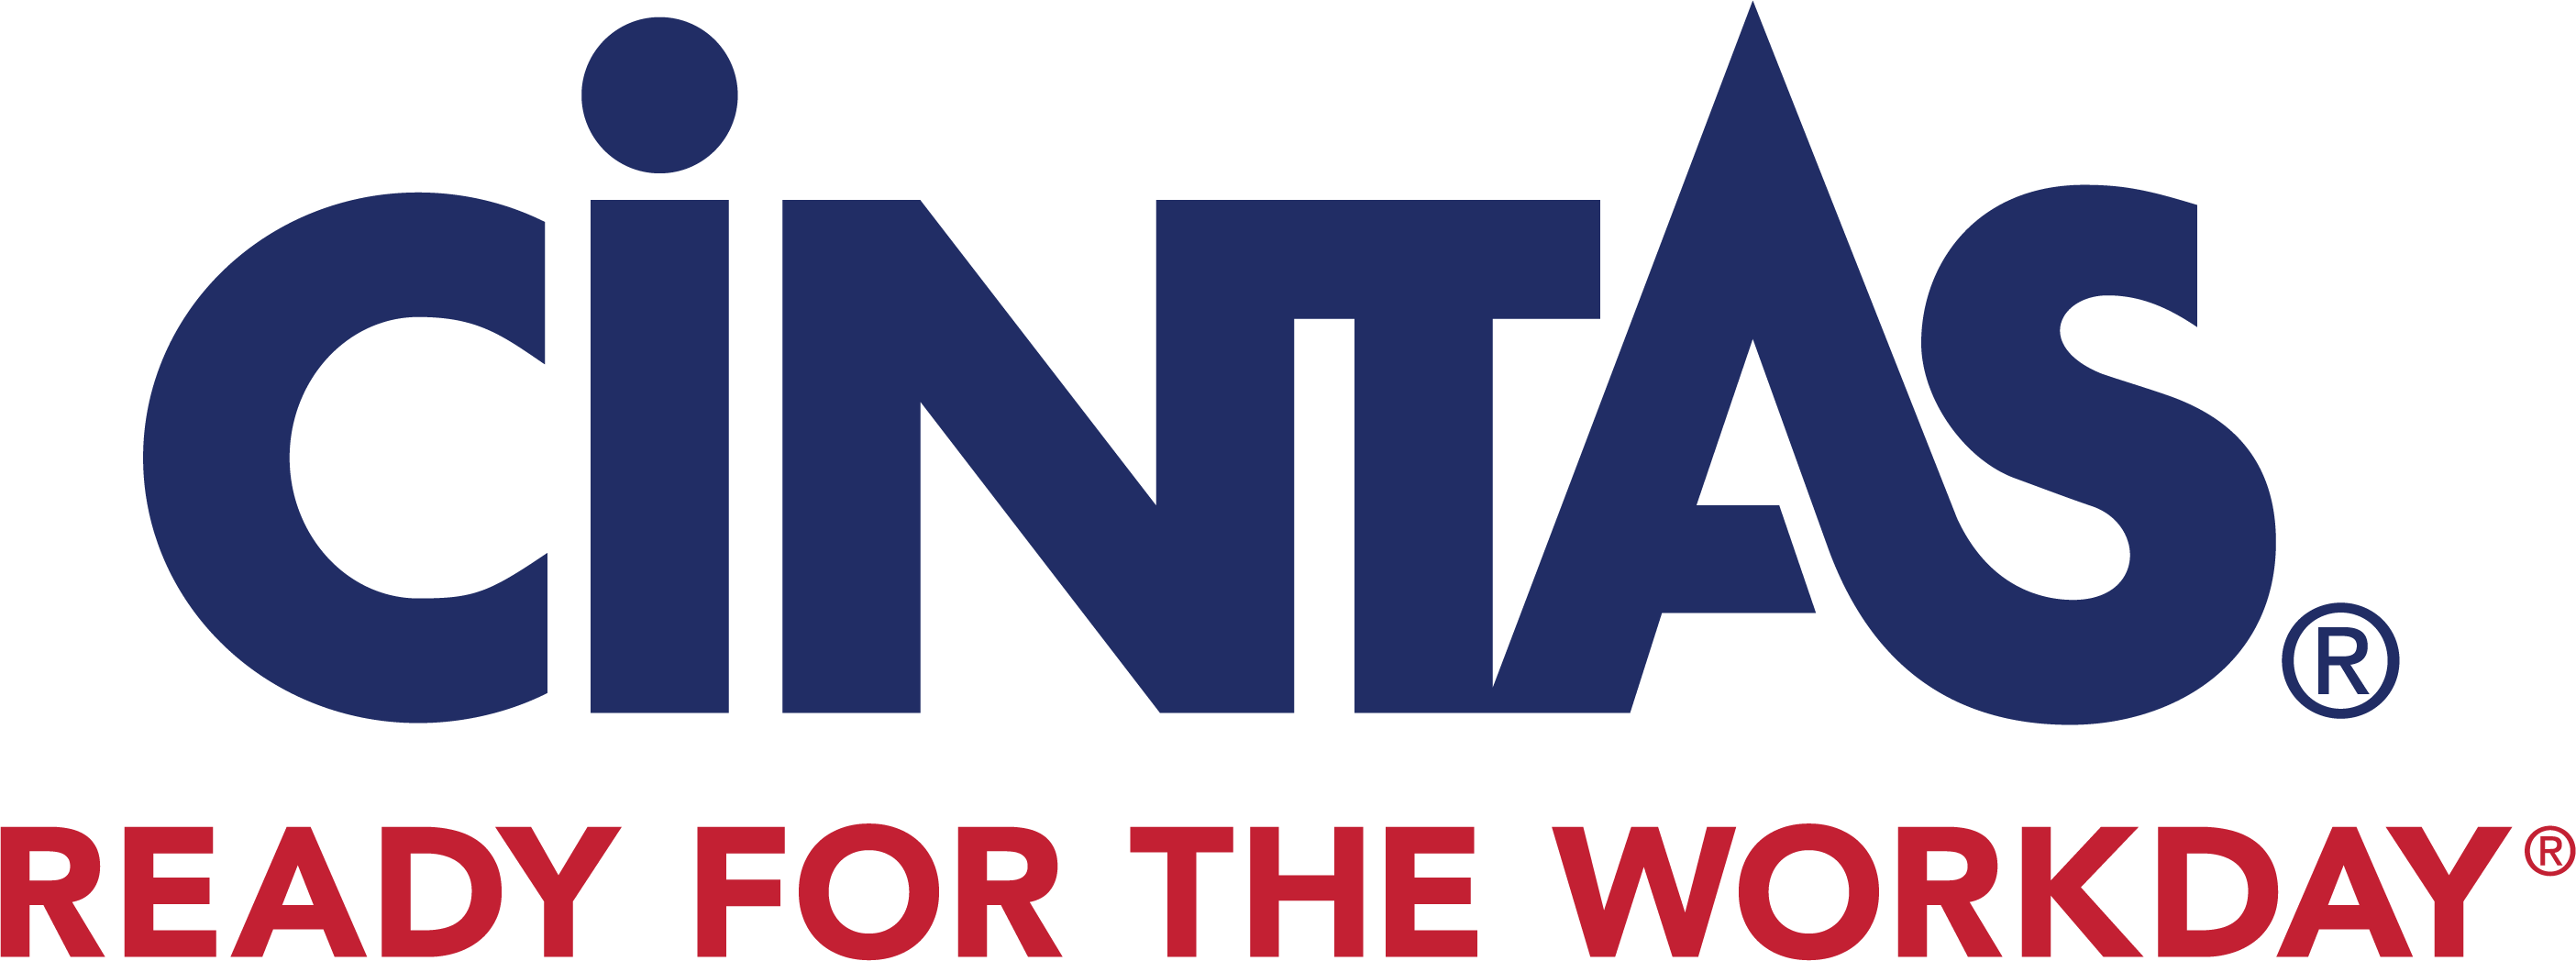 Cintas_RFTW_Logo Registered Trademark